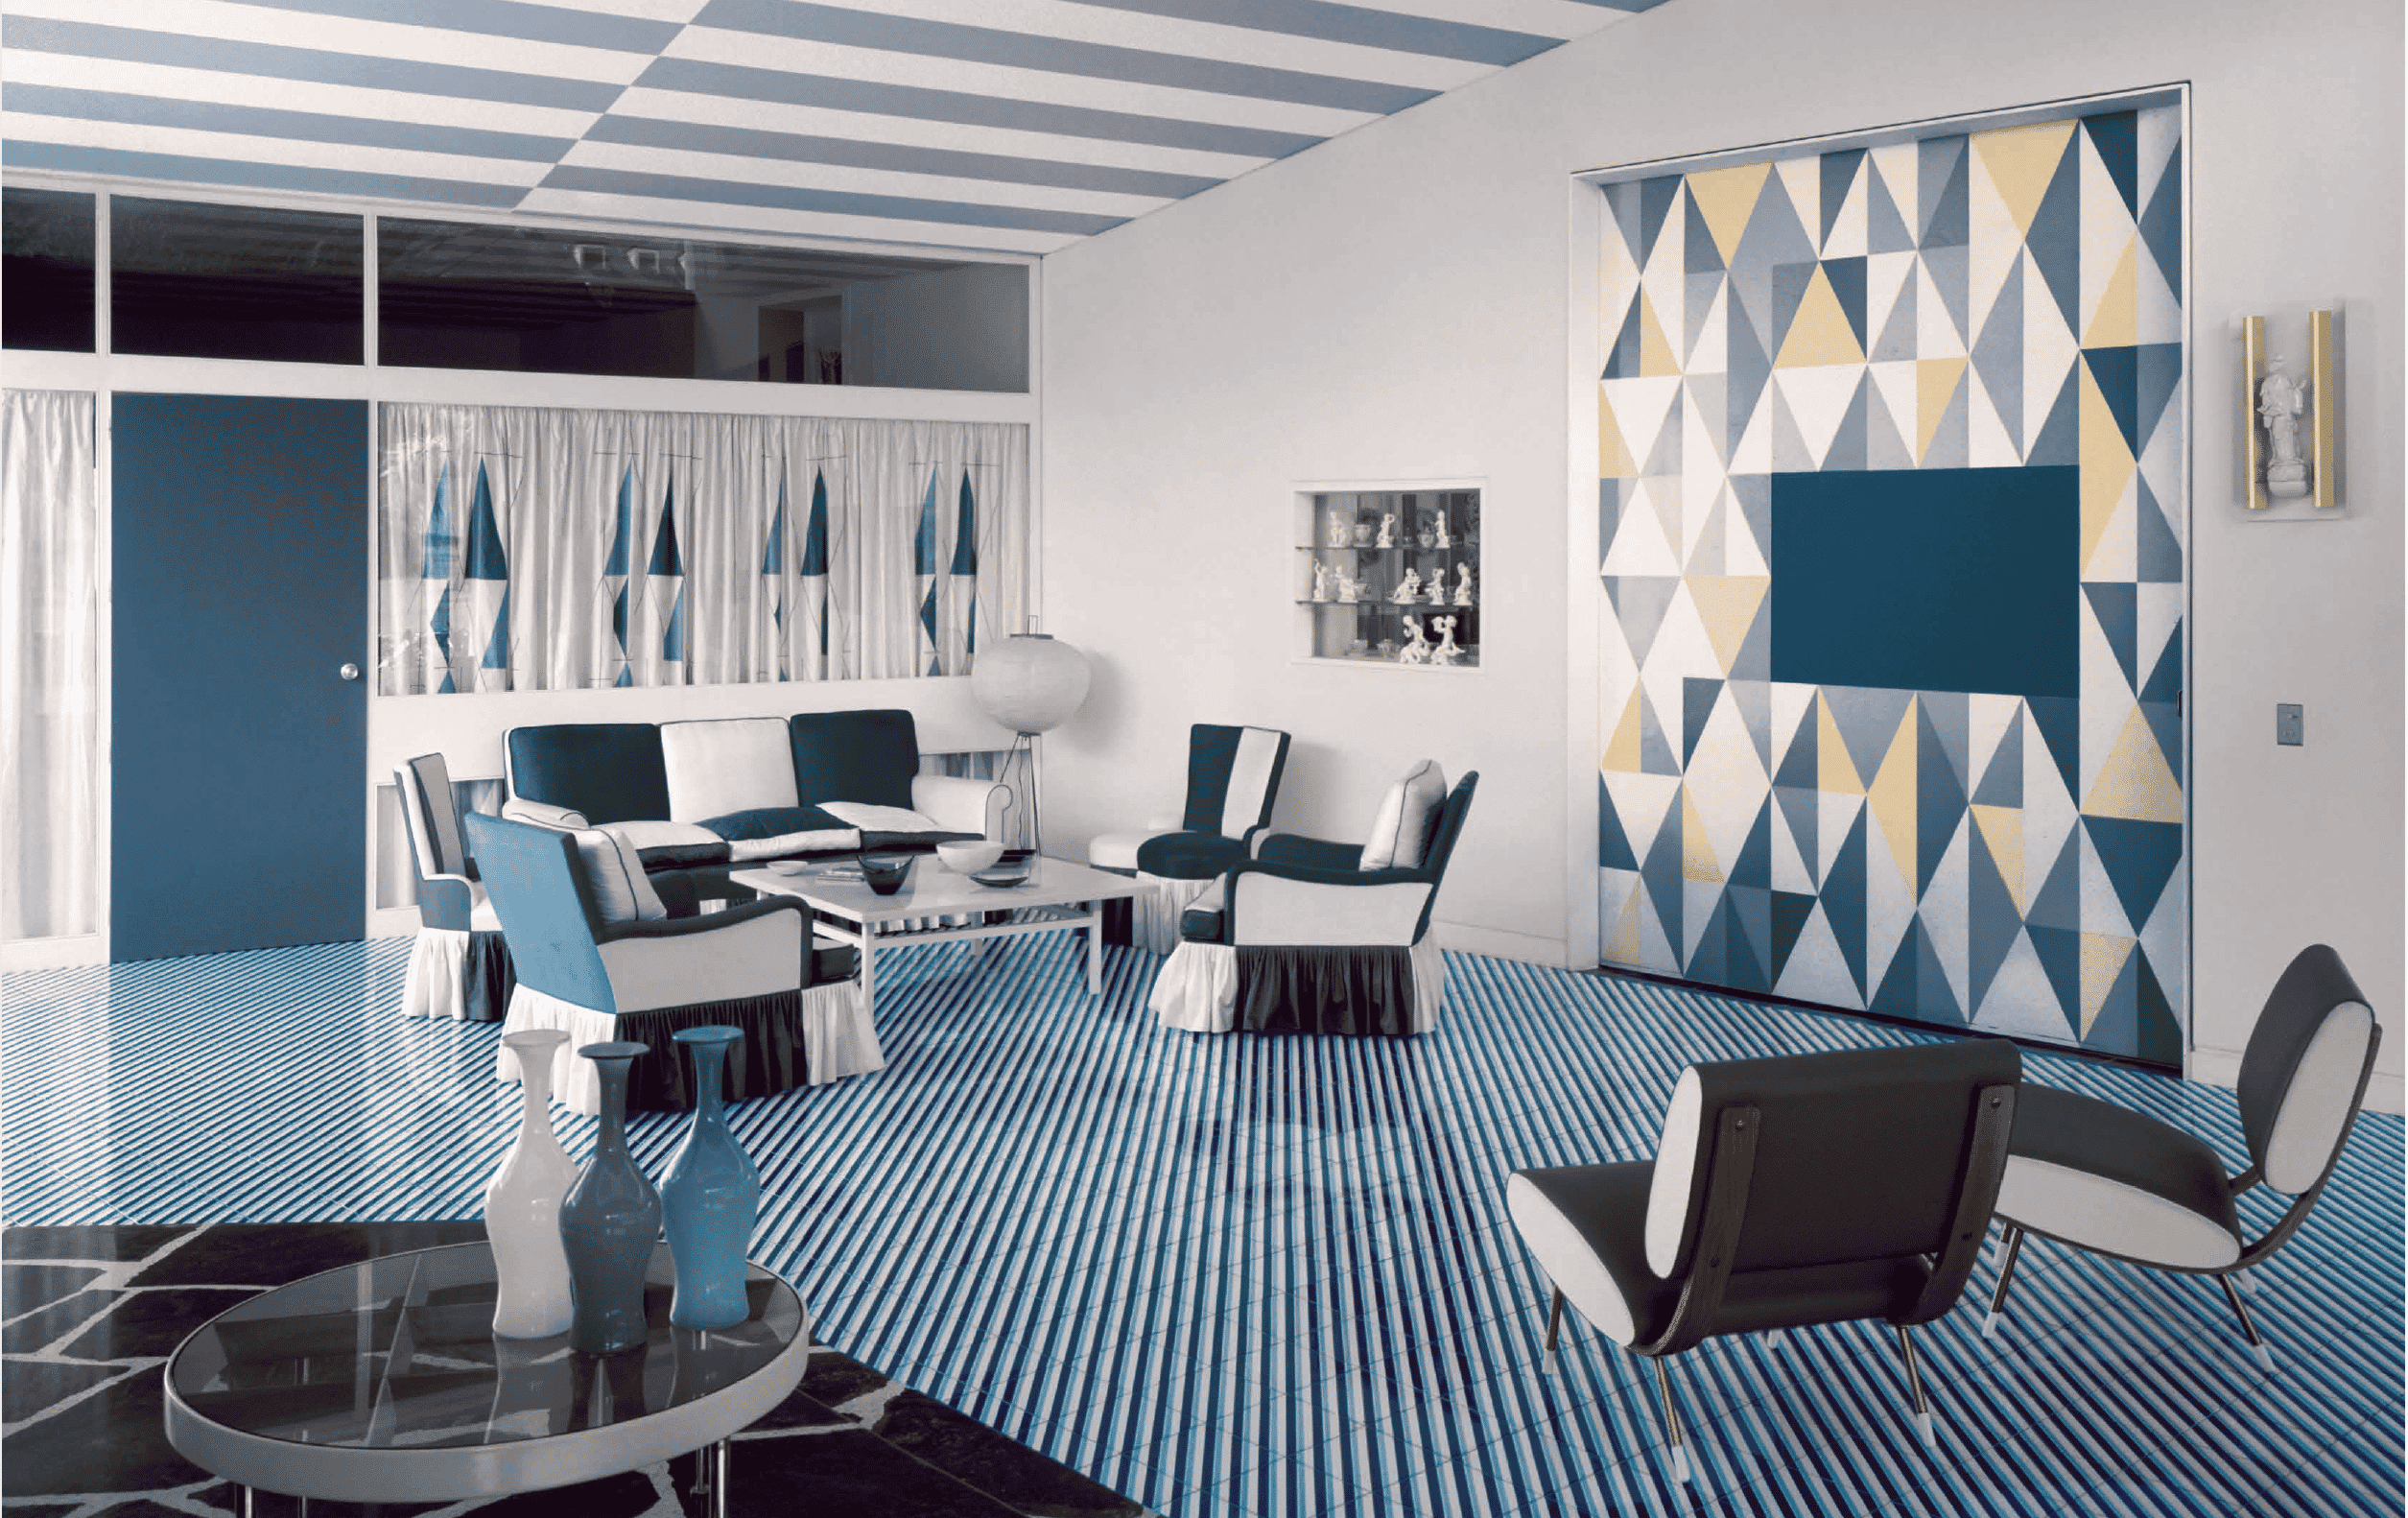 The main reception area of Villa Arreaza, as seen in the book Gio Ponti, offered by Taschen